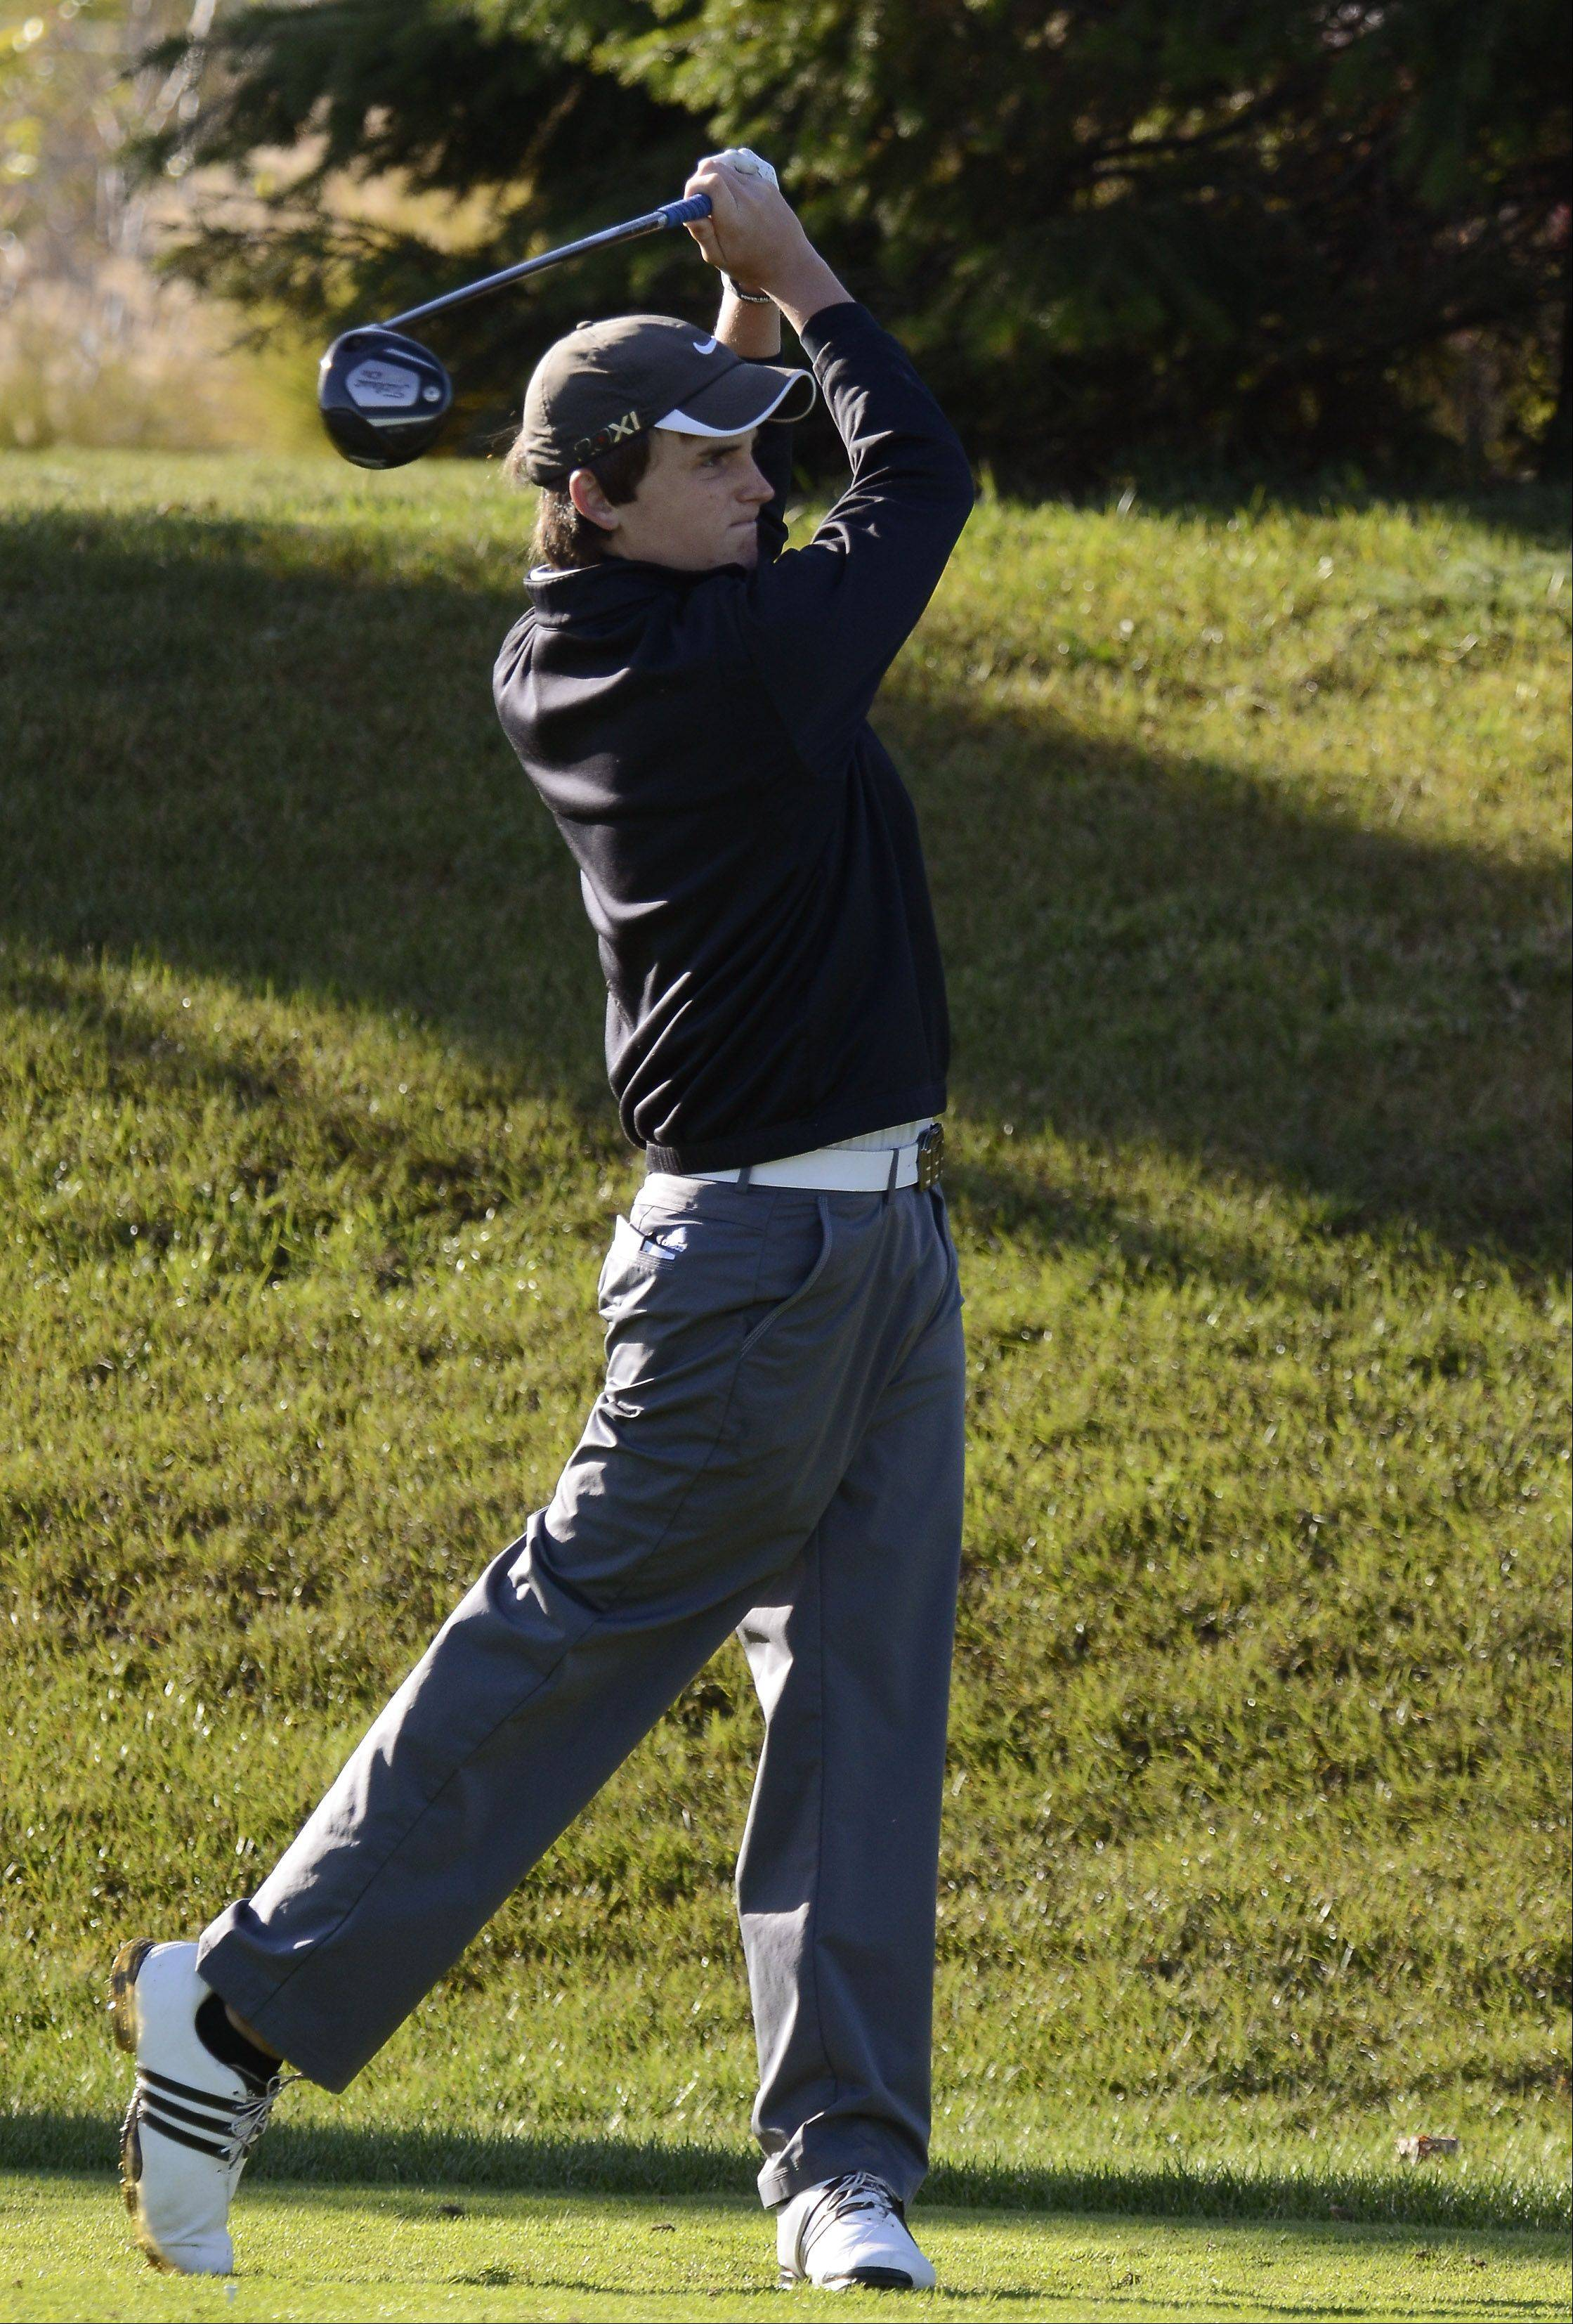 Carmel's David Thoensen drives Monday at the Barrington sectional at Makray Memorial Golf Course.